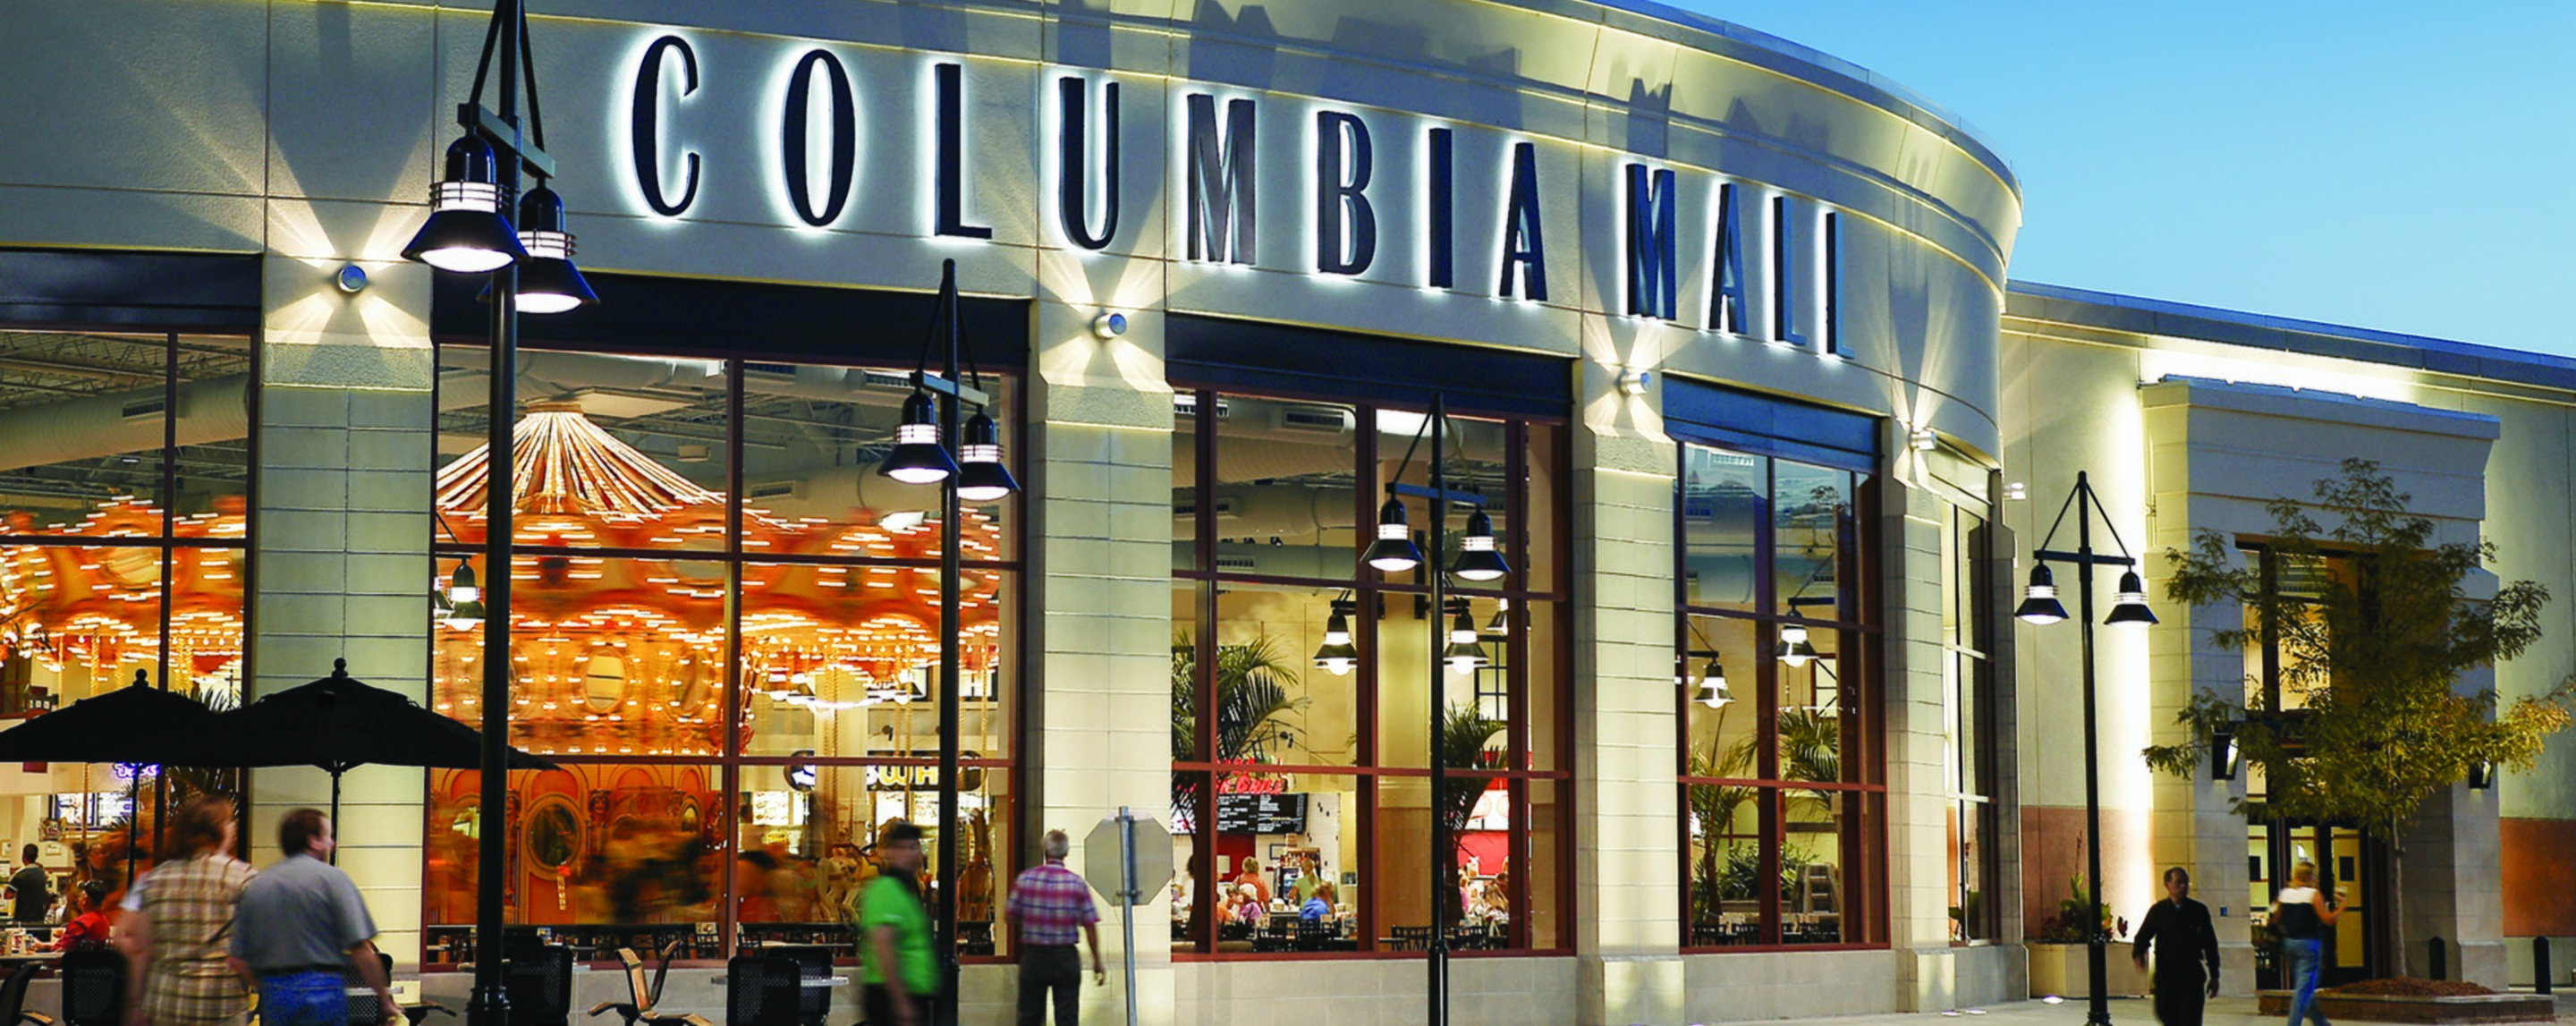 The exterior of the Columbia Mall. People walk by outside and sit at tables under umbrellas.